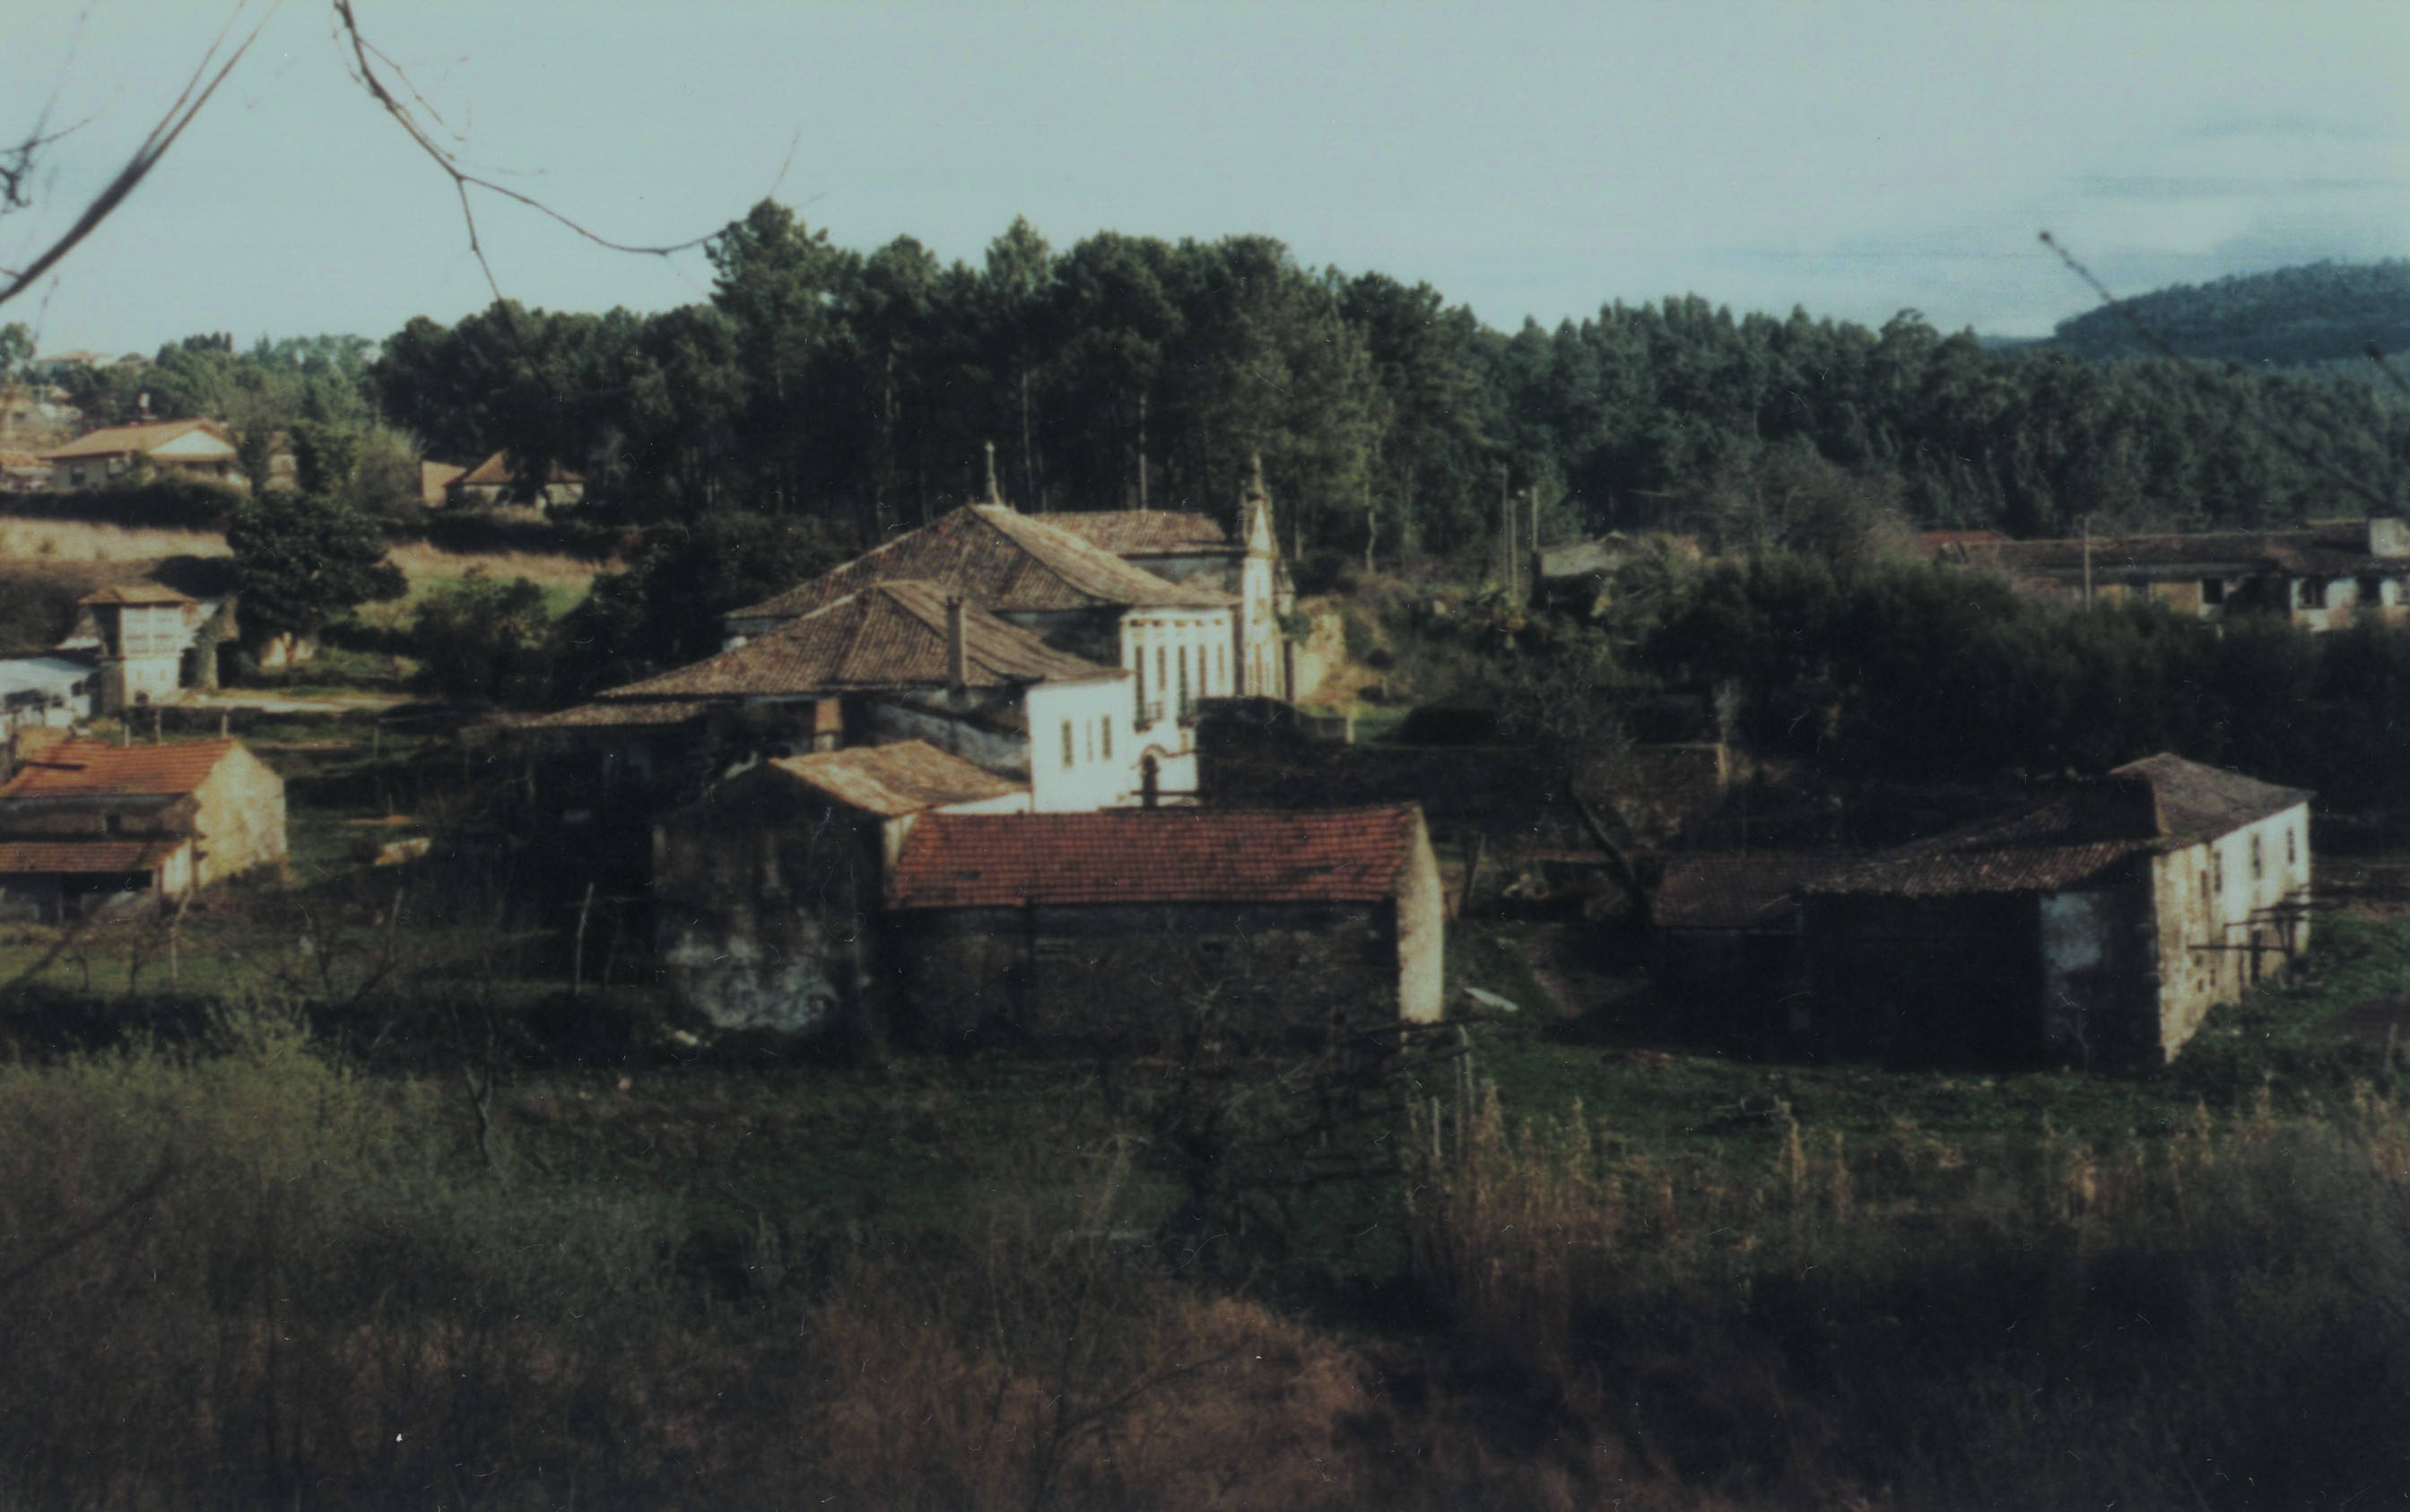 Quinta do Alméu, Macinhata da Seixa (1985)